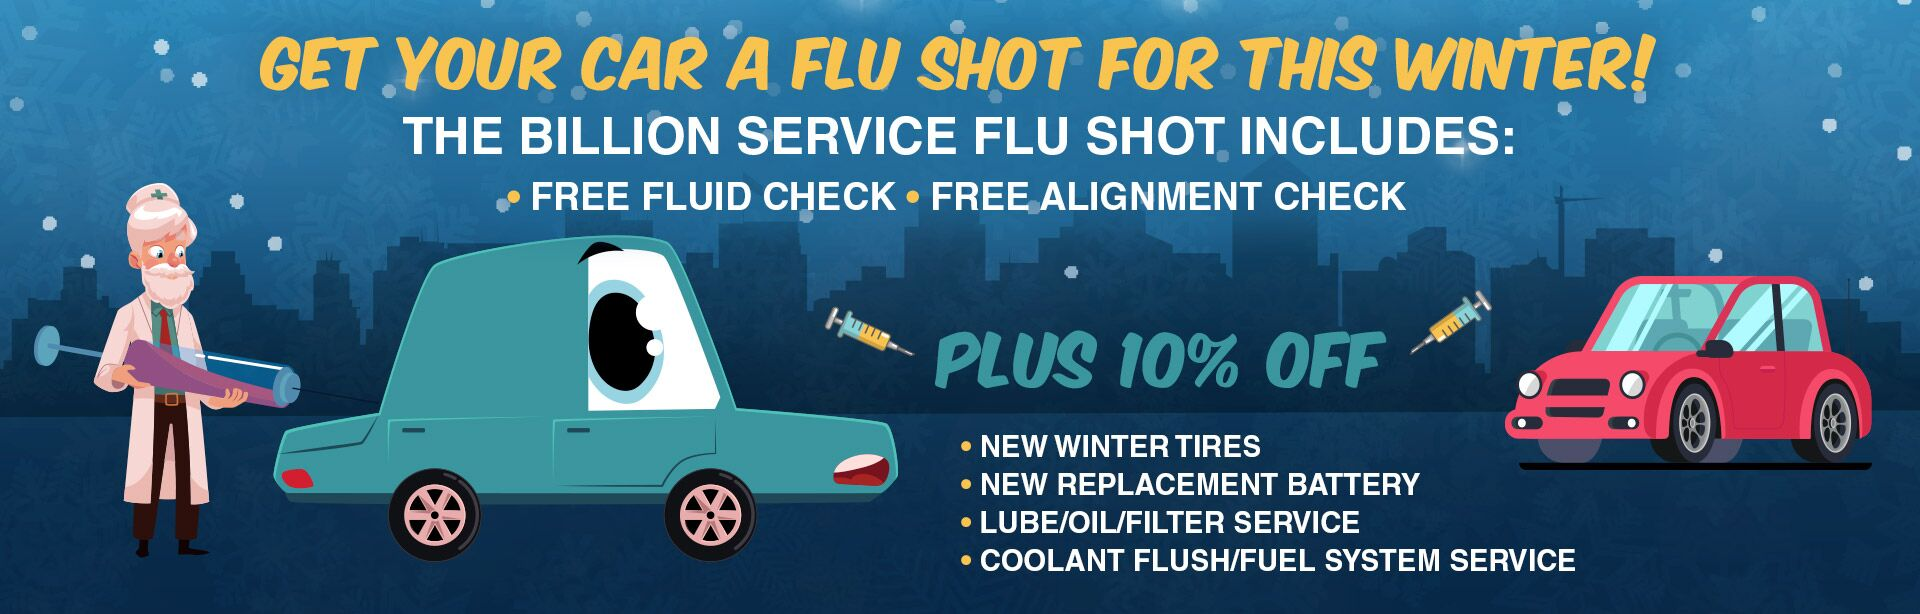 Get Your Car a Flu Shot